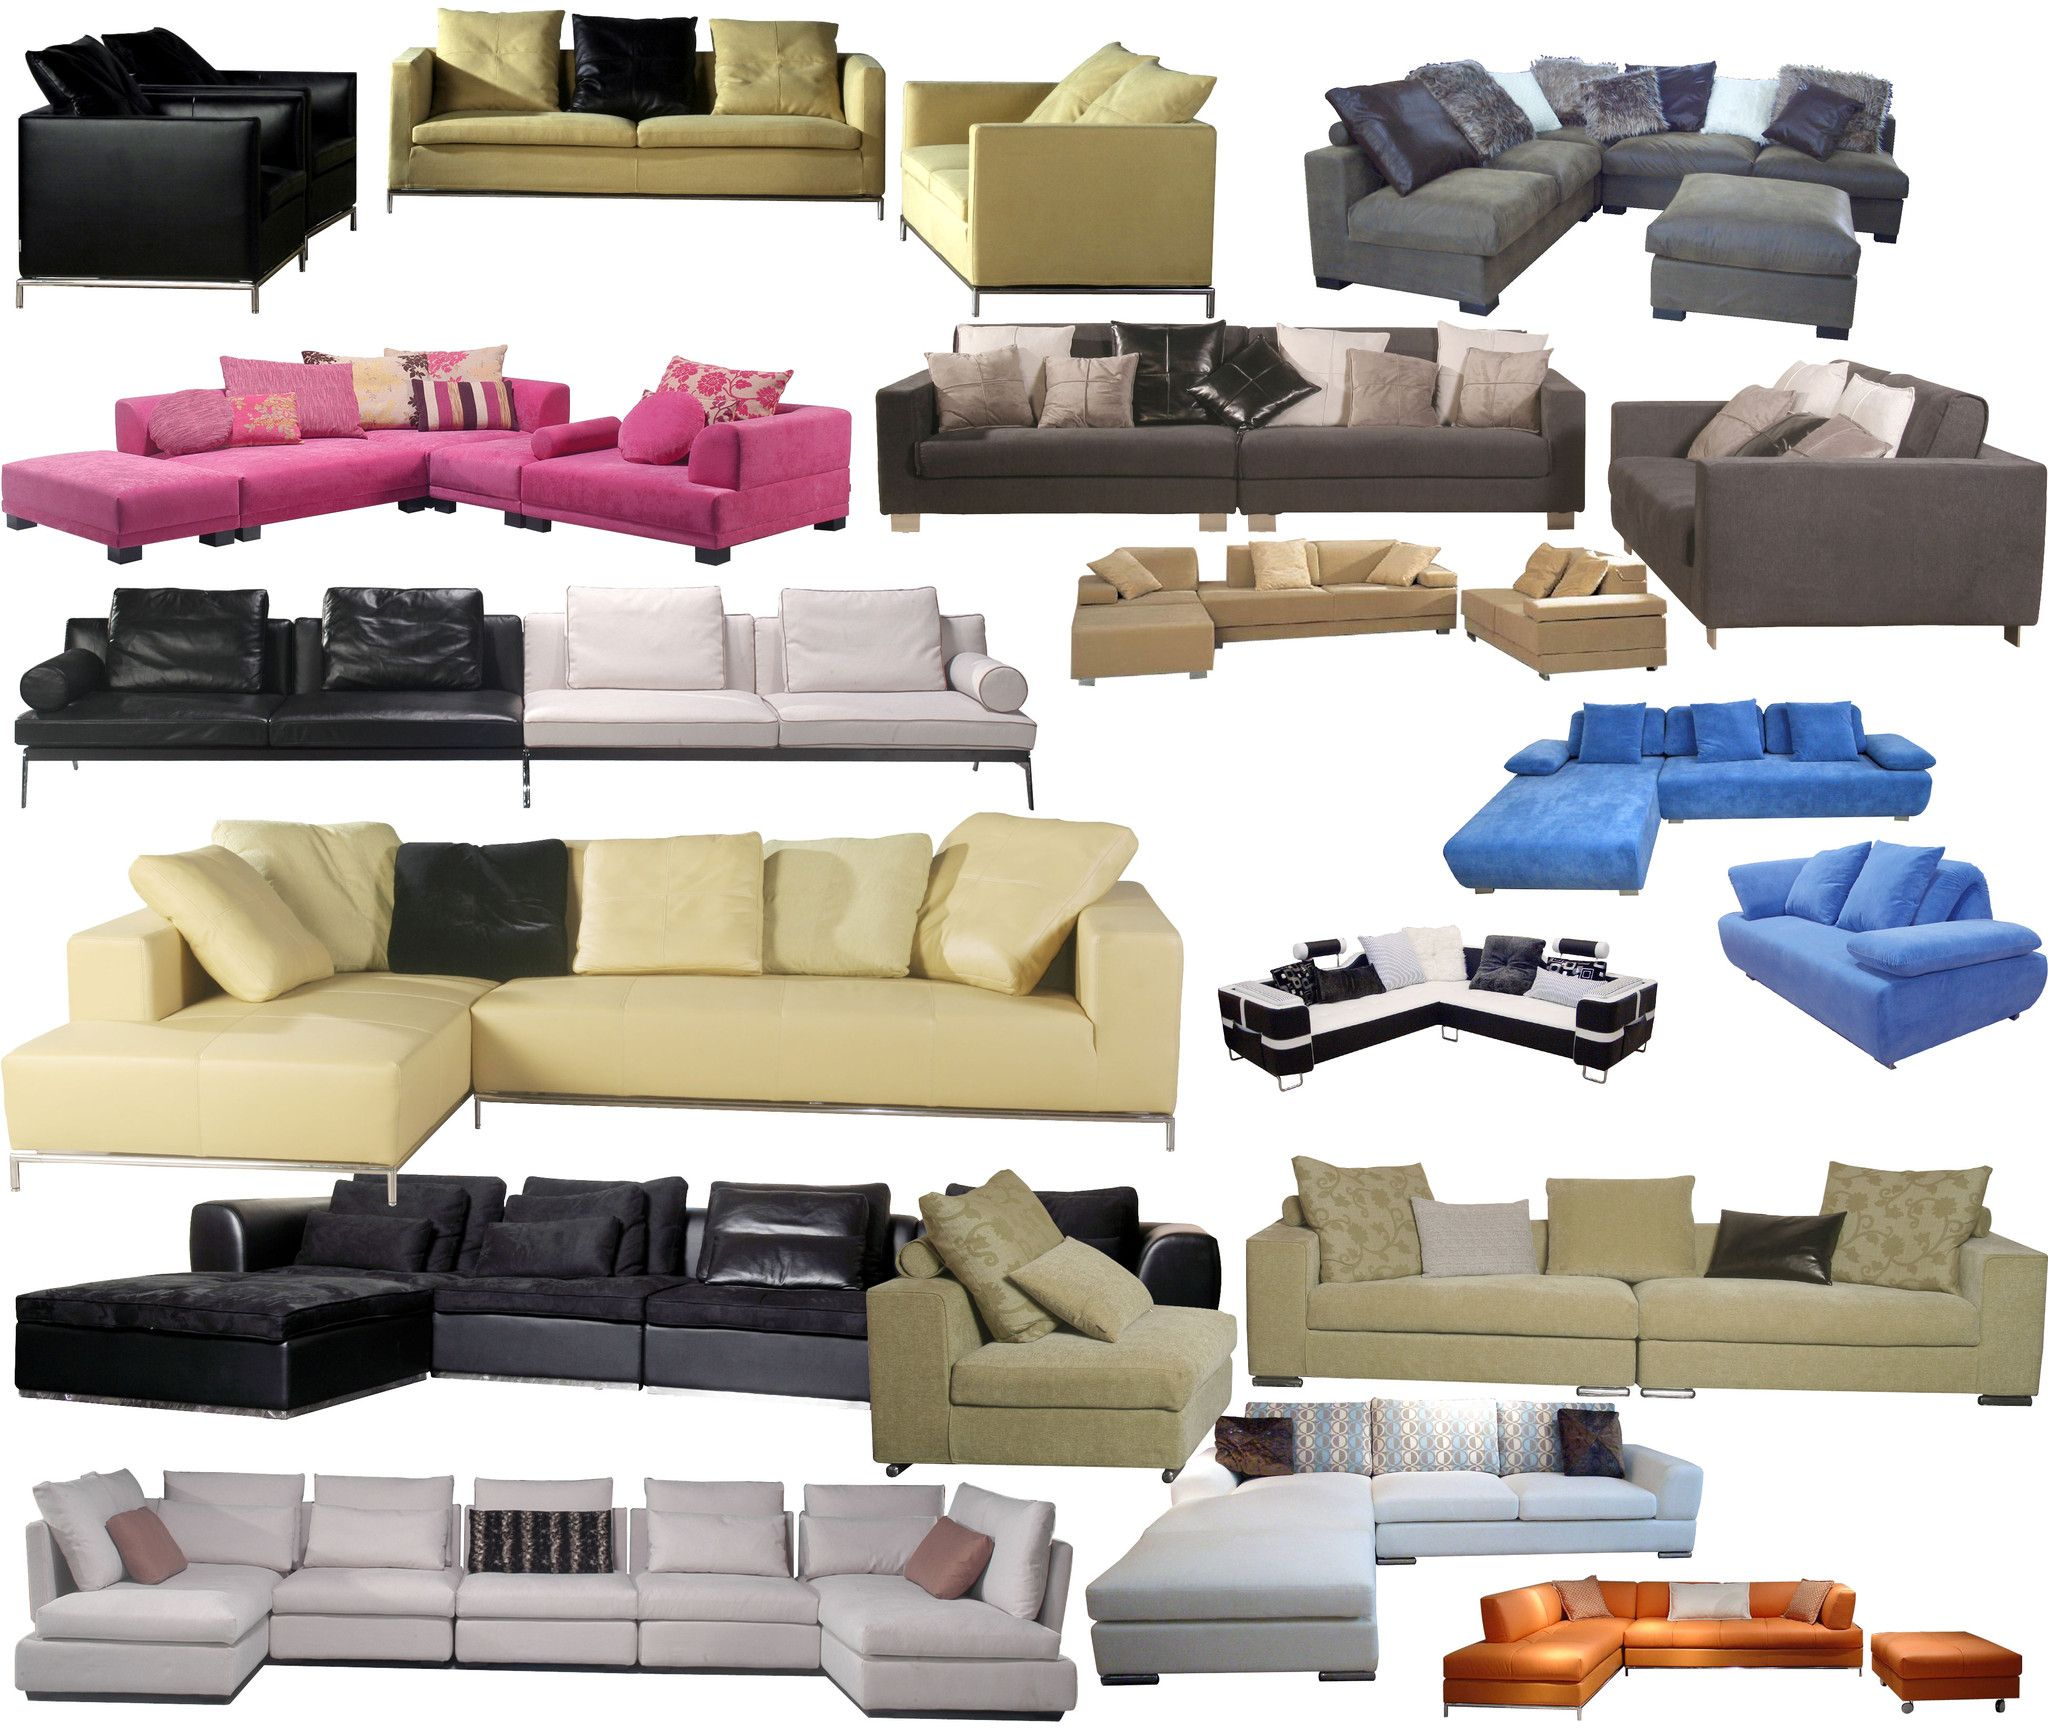 Sofa Set Top View Psd Photoshop Psd Sofa And Chair Blocks V3 Cad Design Free